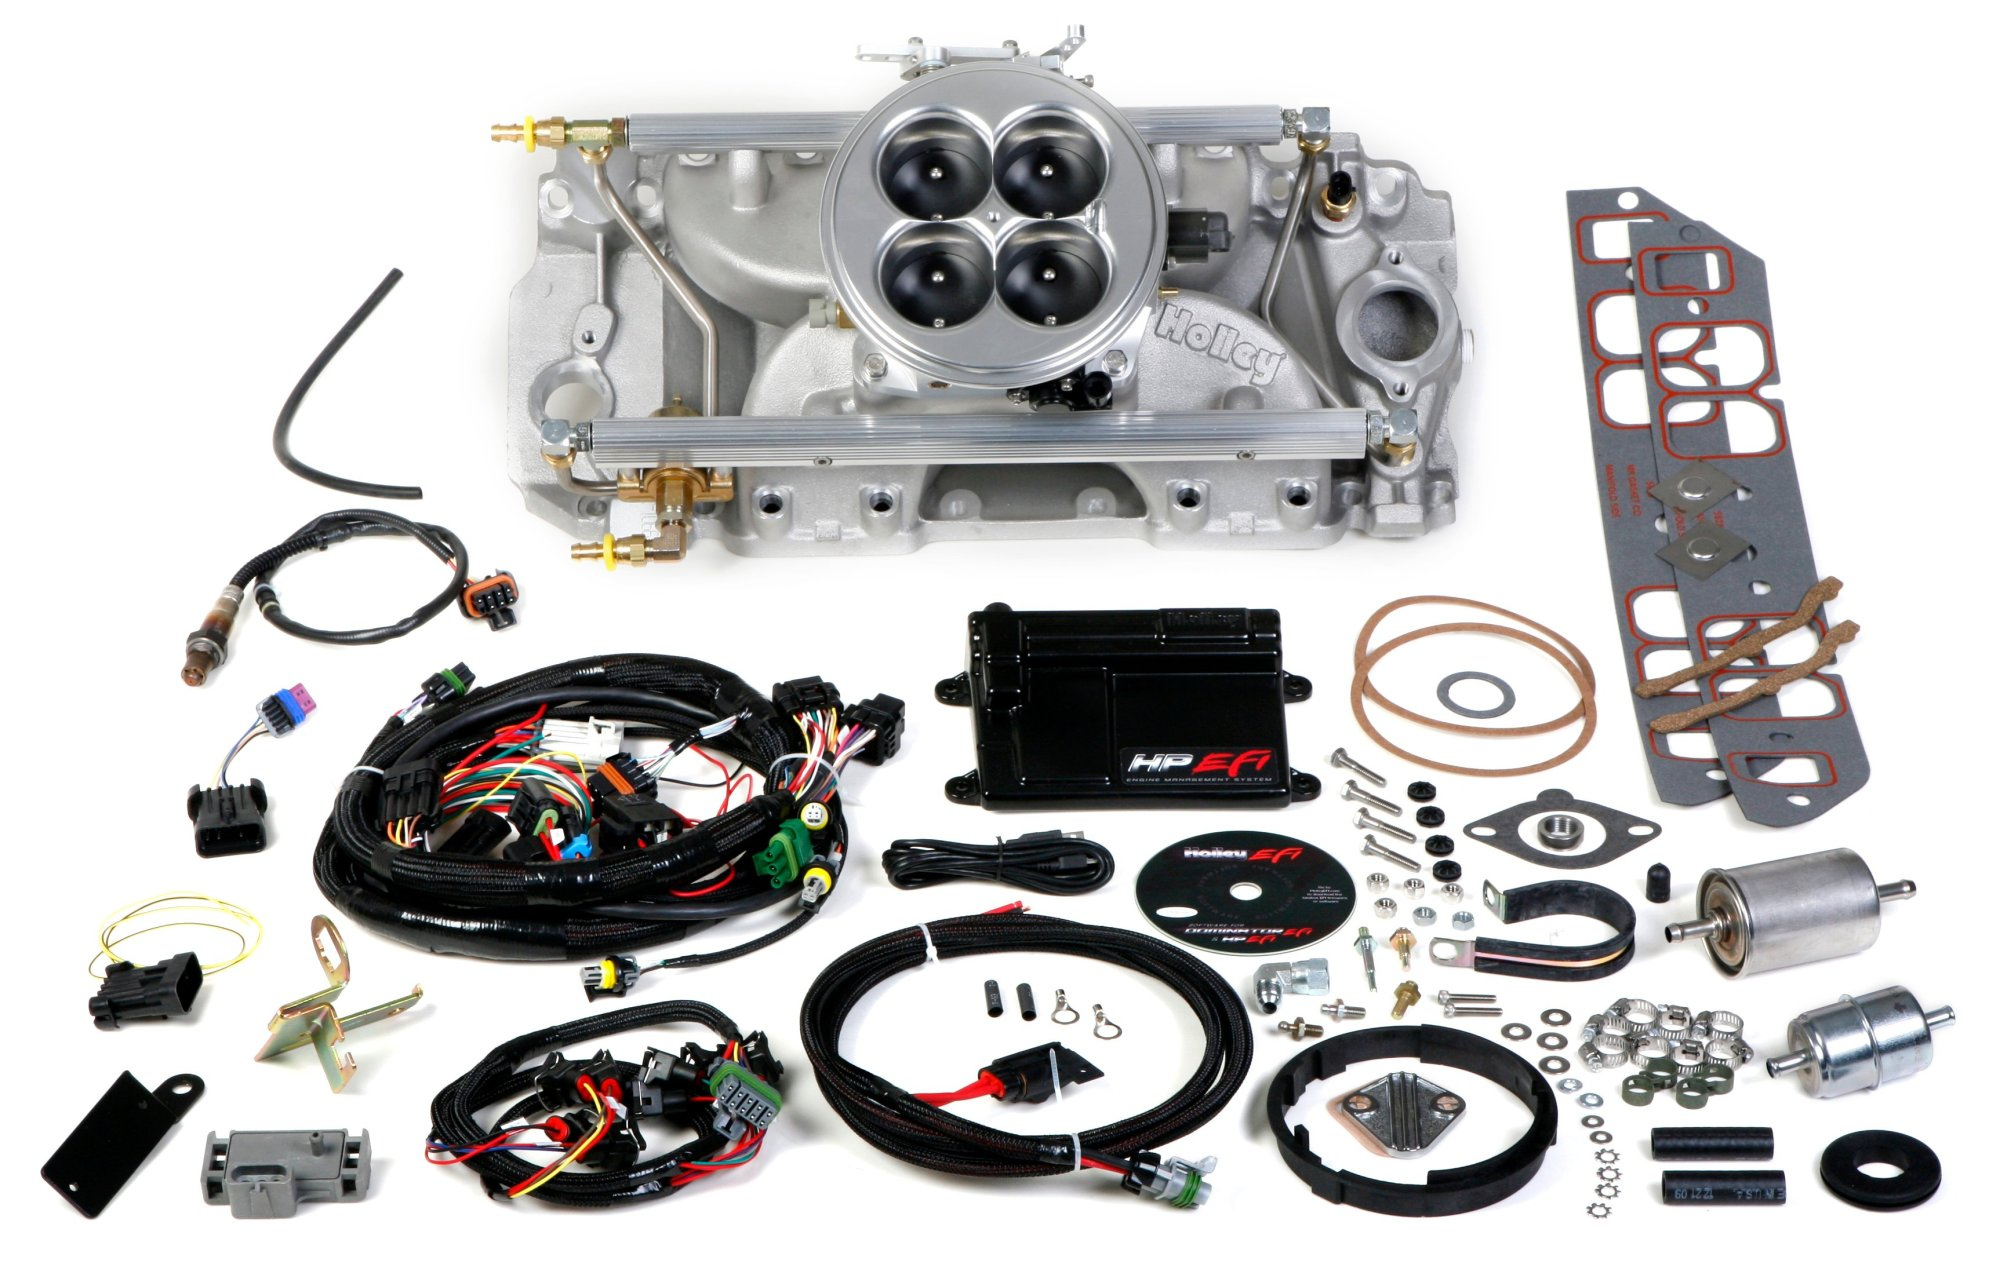 hight resolution of 550 838 hp efi 4bbl multi port fuel injection system image